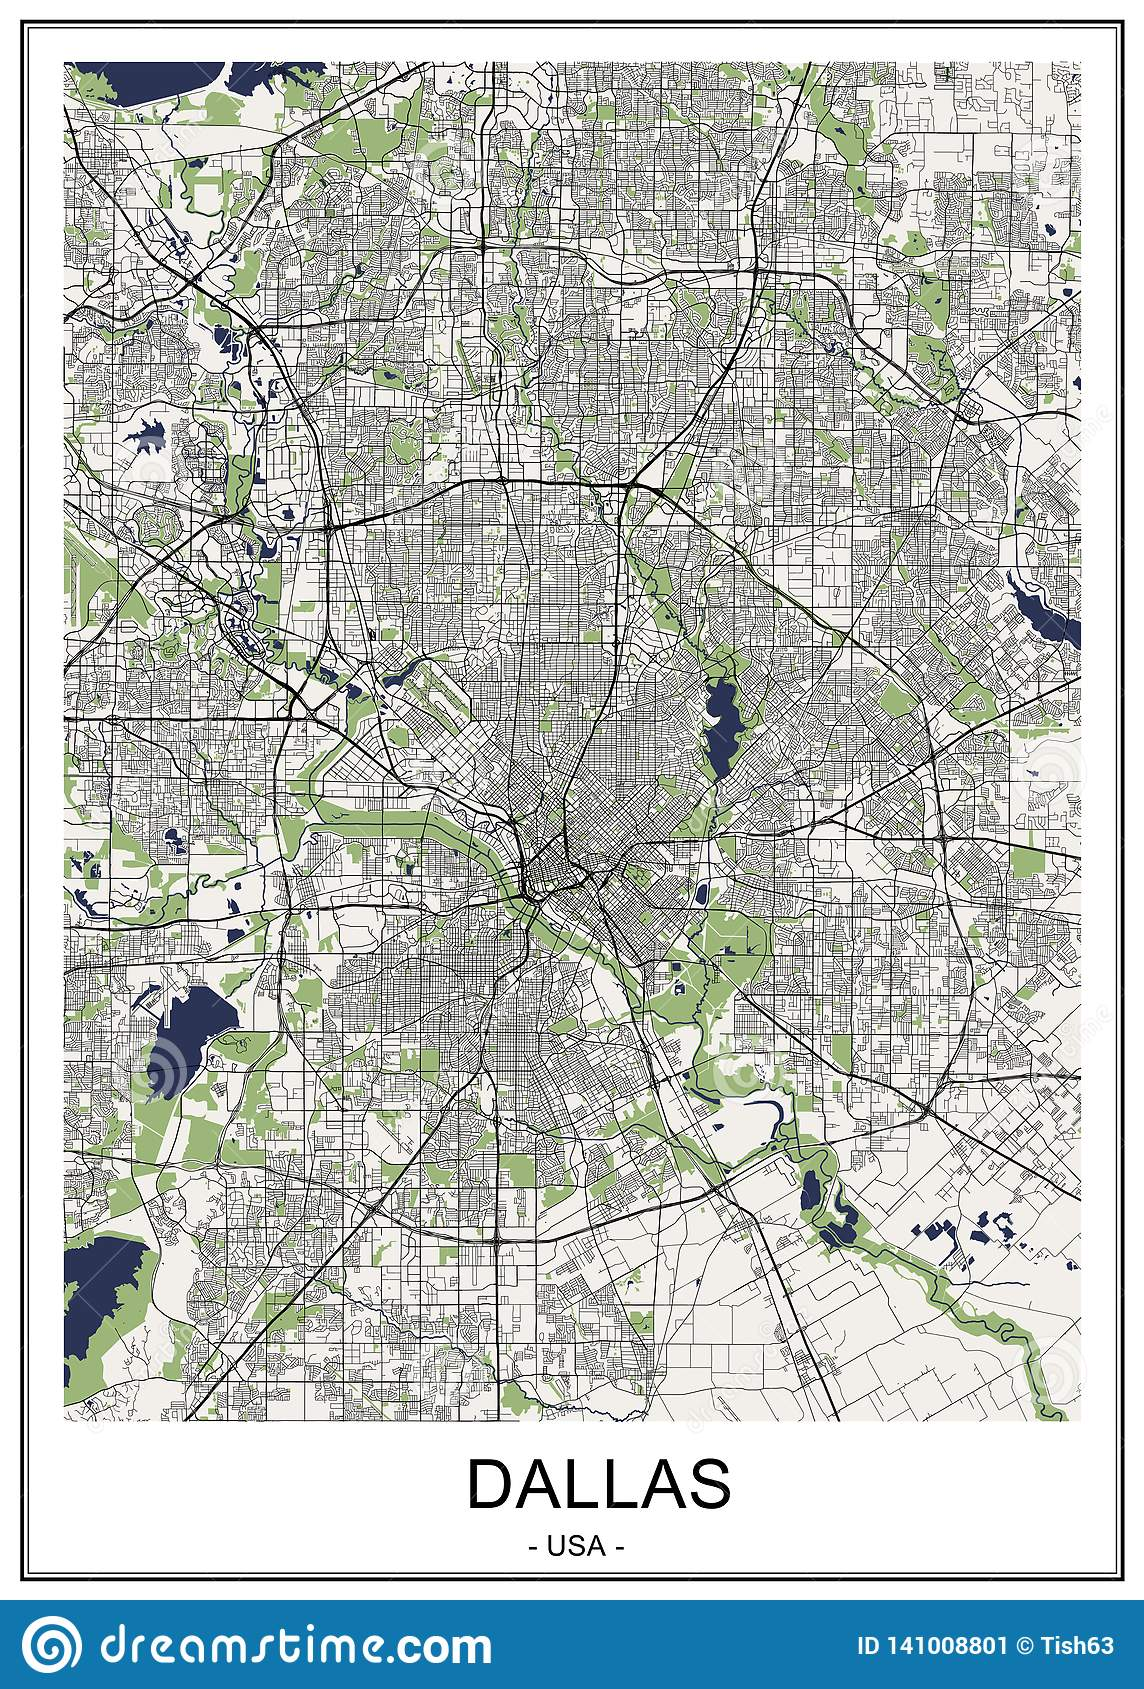 Map Of The City Of Dallas, Texas, USA Stock Illustration ... Dallas Map Usa on night view of dallas, transportation dallas, hollywood home tour dallas, interactive map of dallas, map of cities around dallas, street map dallas, texas dallas, money dallas, railroad map dallas, zip code map dallas, tourist map of dallas,